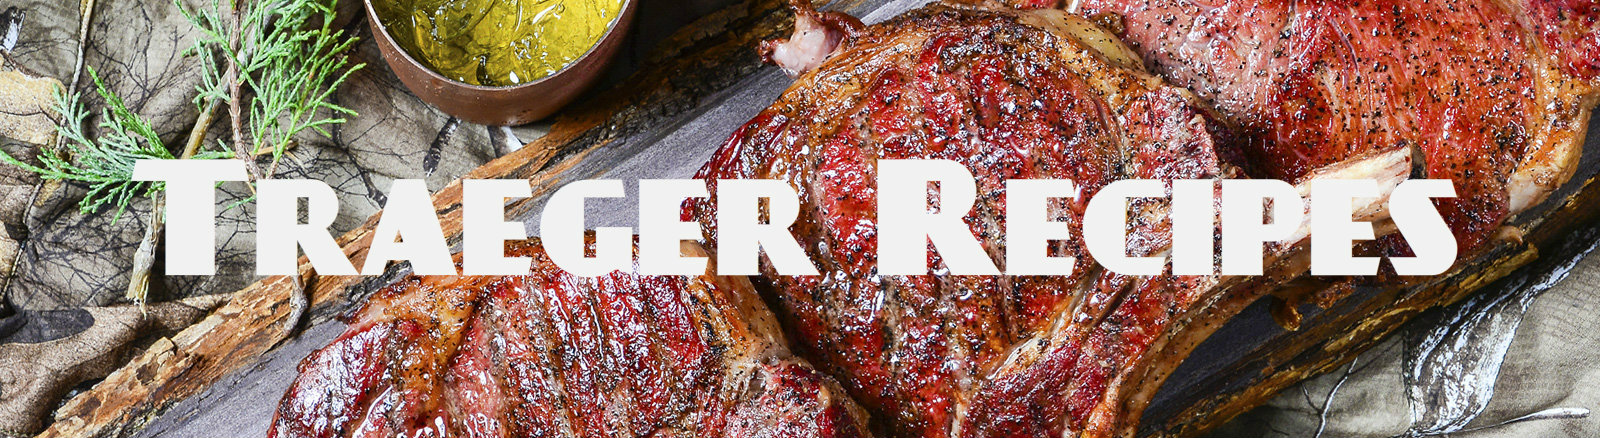 traeger-recipes1.jpg